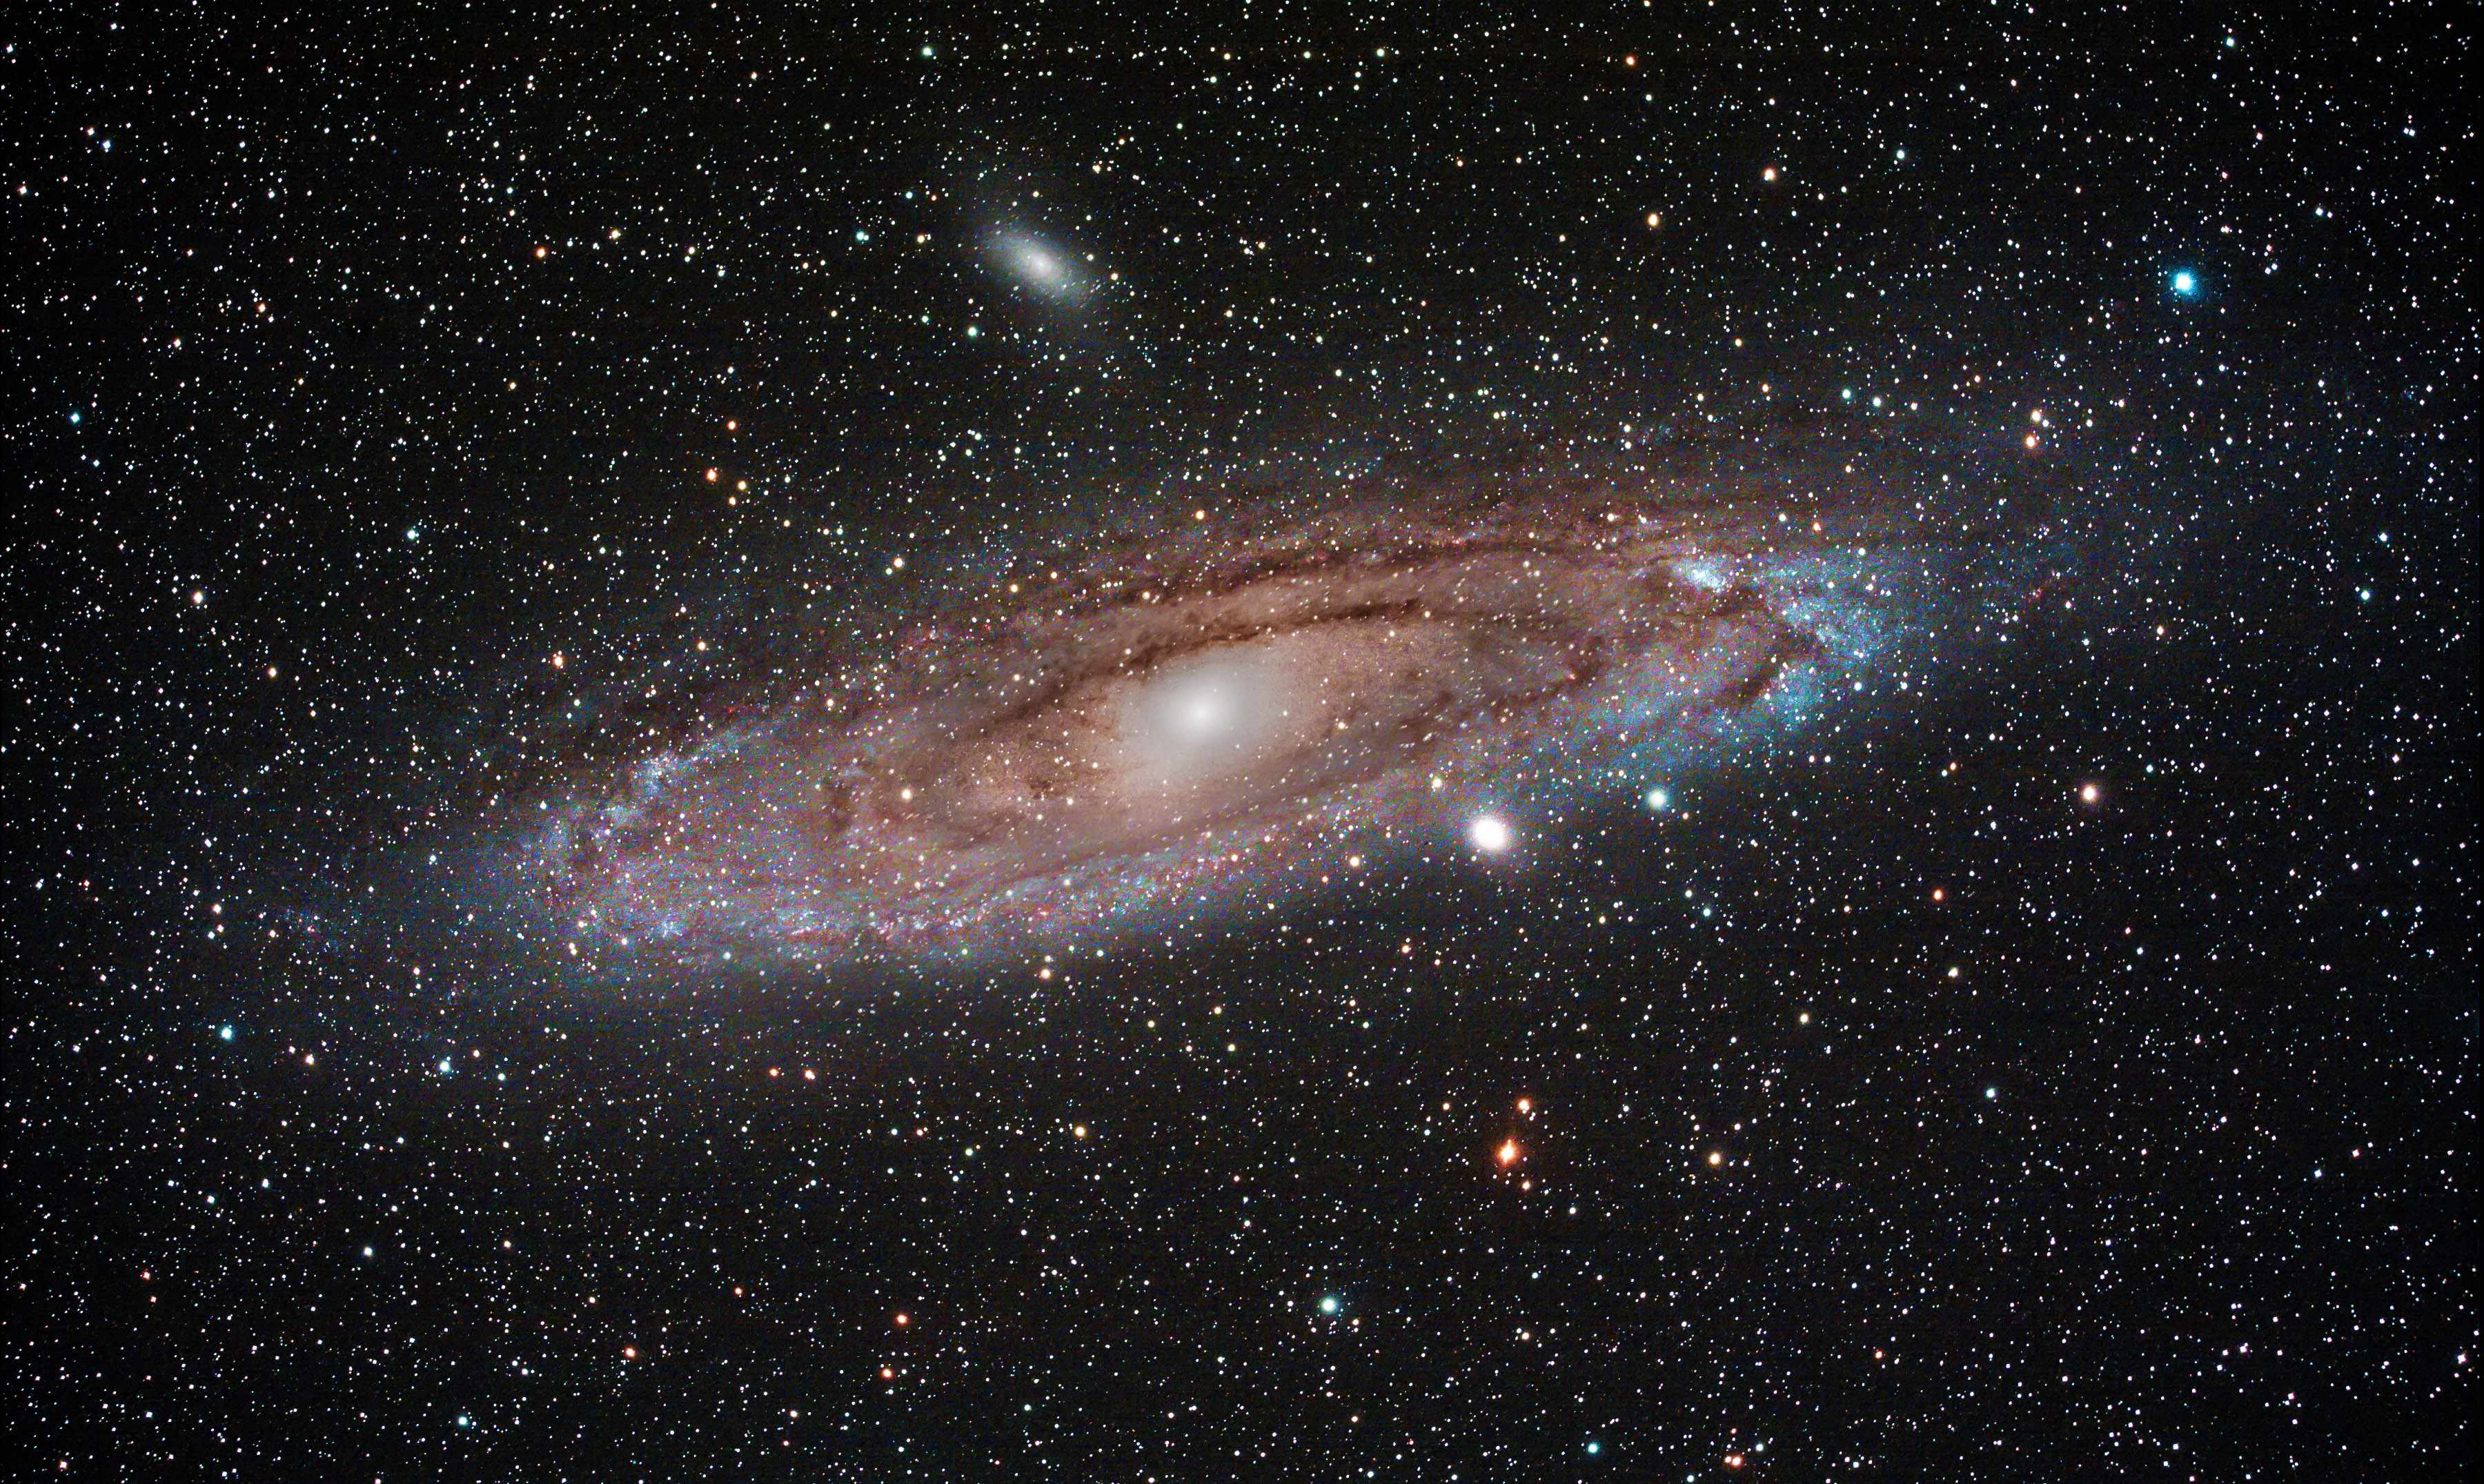 Andromeda Galaxy, Charles Thody, Pembrokeshire, 8 September 2015. Equipment: Modified Canon EOS 40D DSLR camera, Sky-Watcher Equinox-80 ED apo refractor, Sky-Watcher NEQ6 PRO SynScan mount.